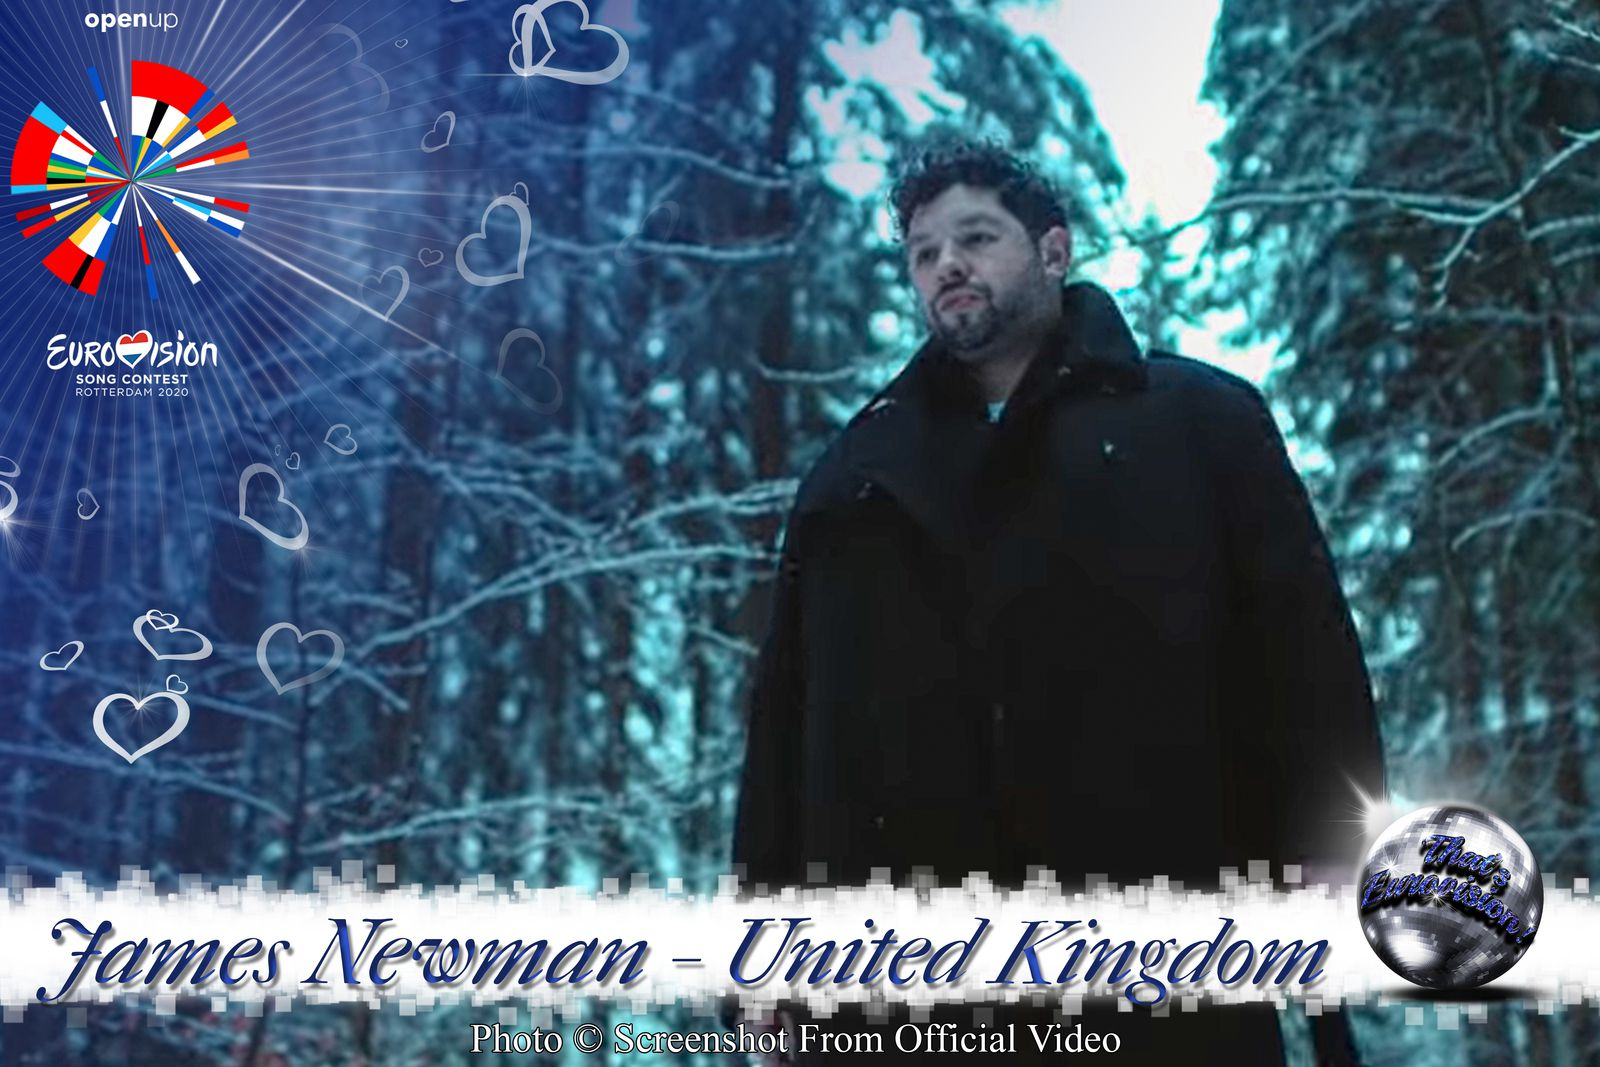 United Kingdom 2020 - James Newman - My Last Breath